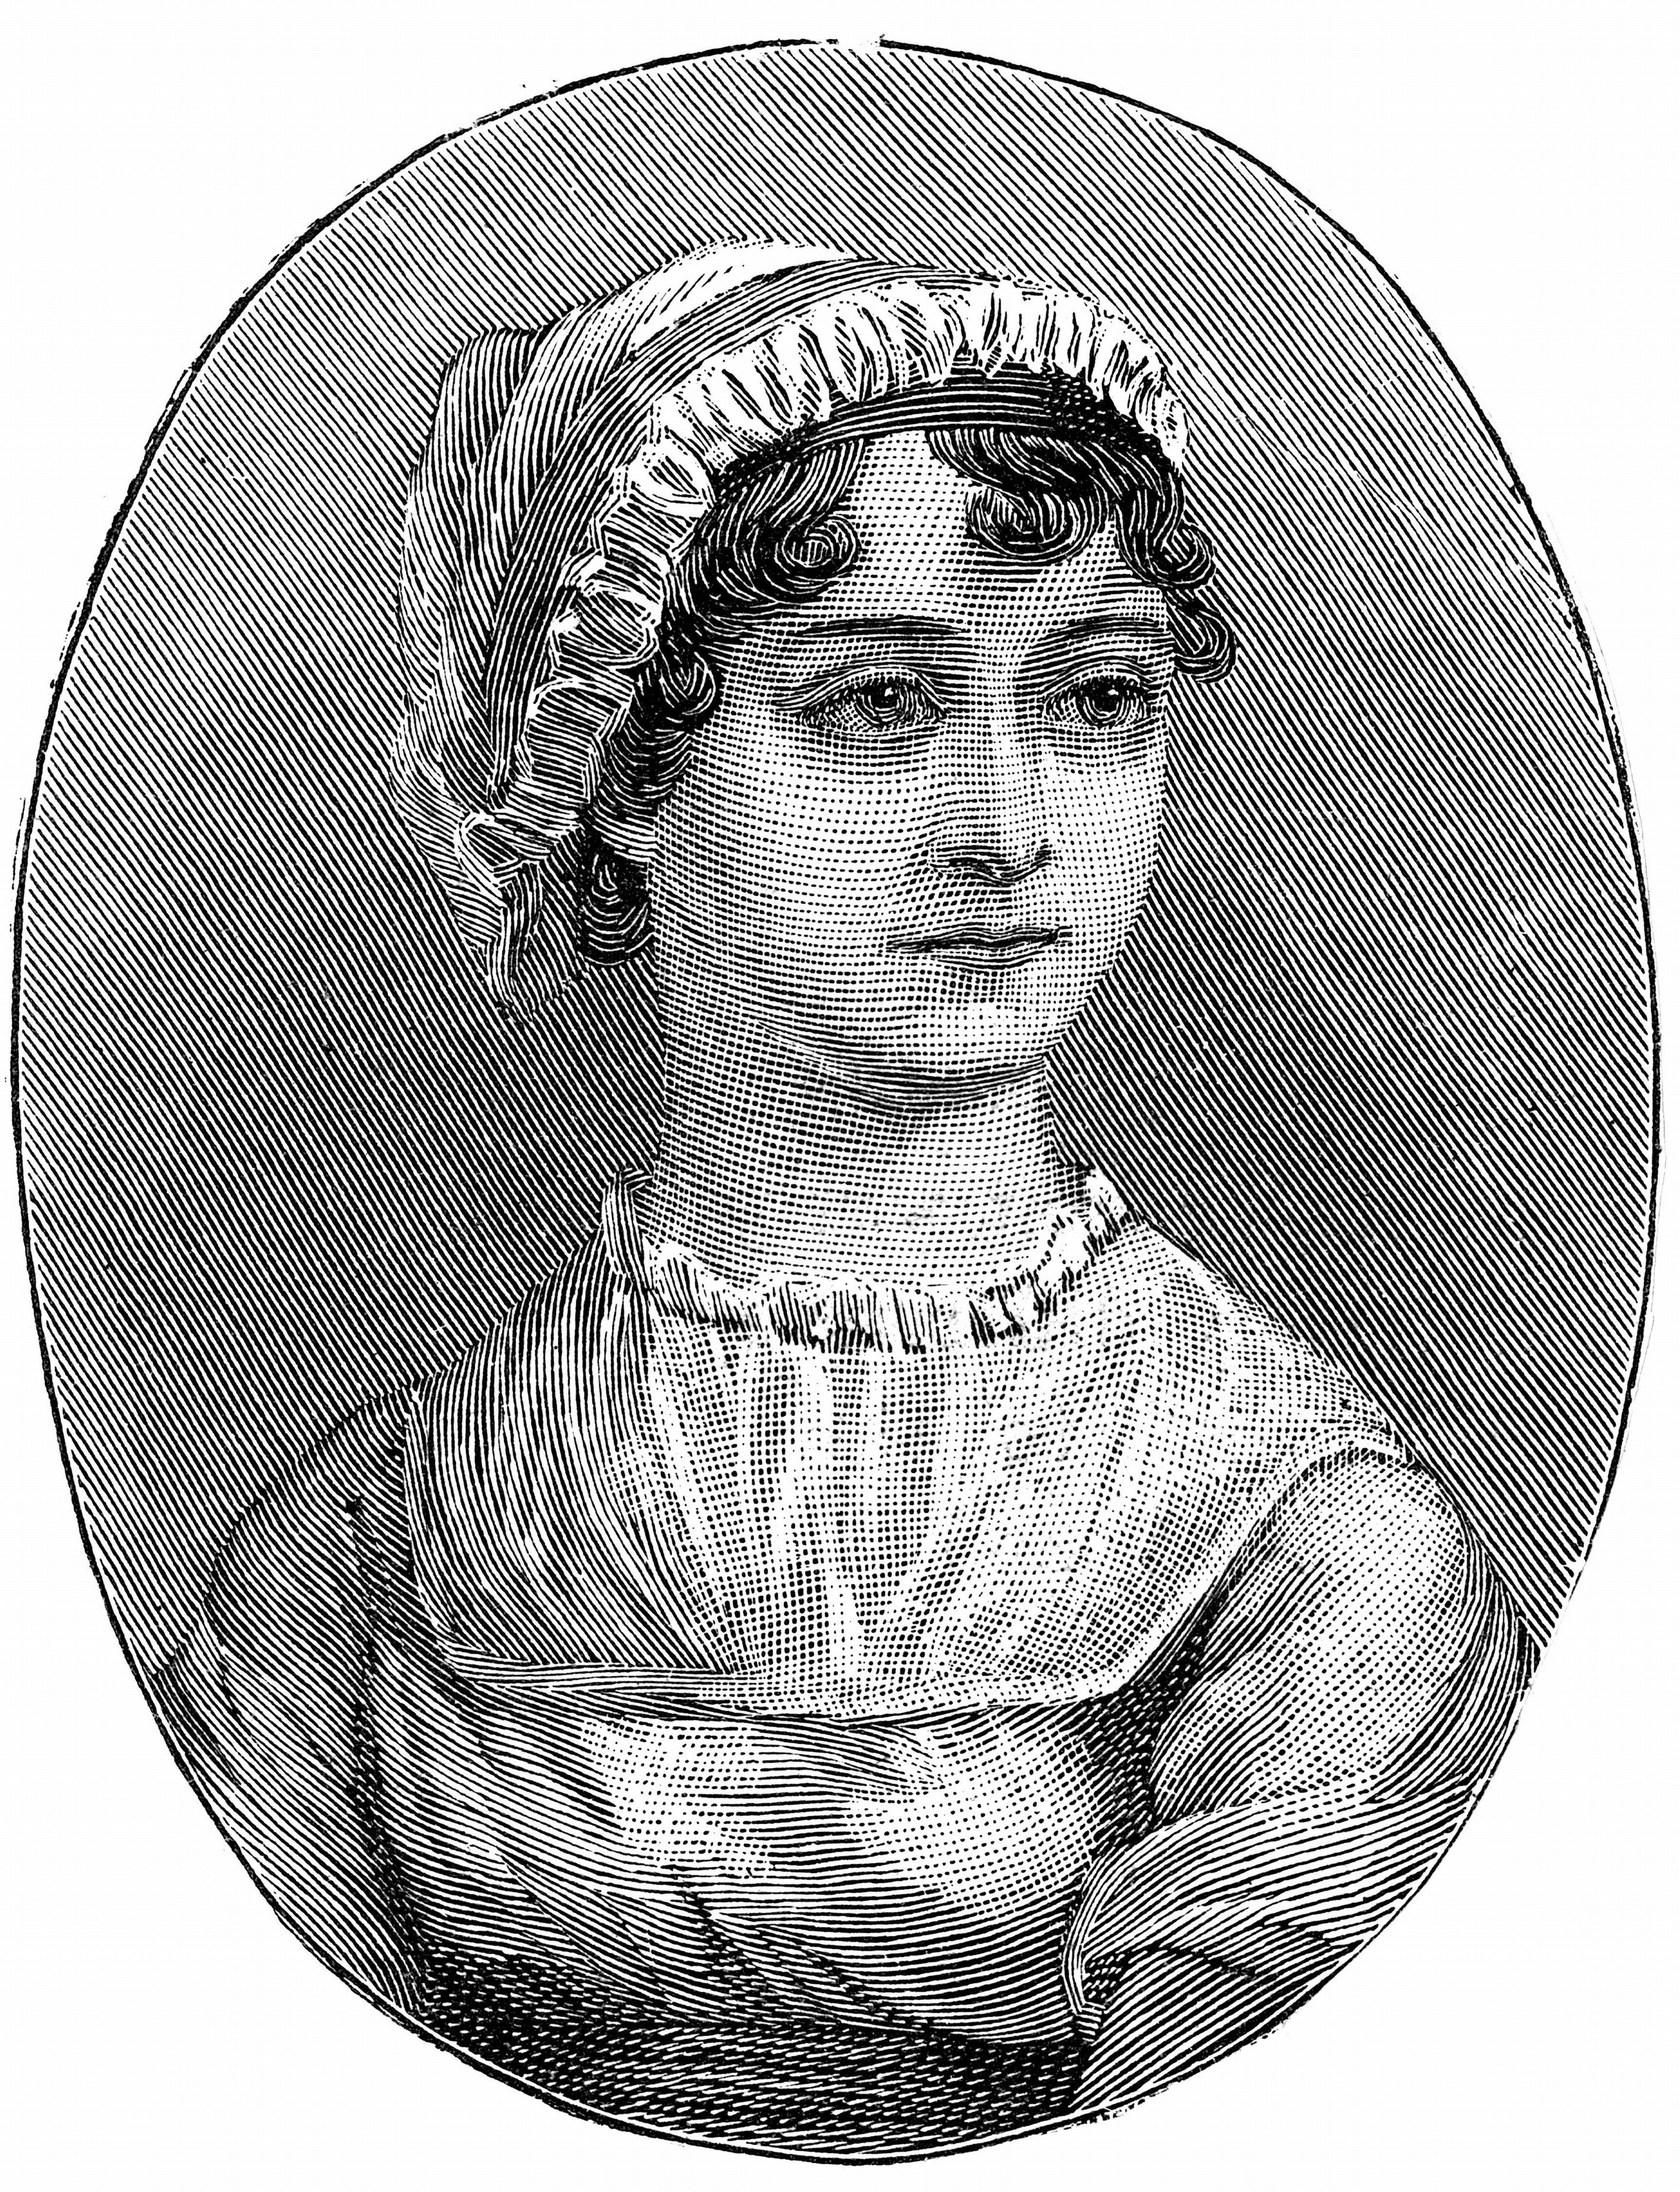 UNSPECIFIED - CIRCA 1754: Jane Austen (1775-1817) English novelist remembered for her six great novels Sense and Sensibility, Pride and Prejudice, Mansfield Park, Emma, Persuasion, and Northanger Abbey. Engraving. (Photo by Universal History Archive/Getty Images)